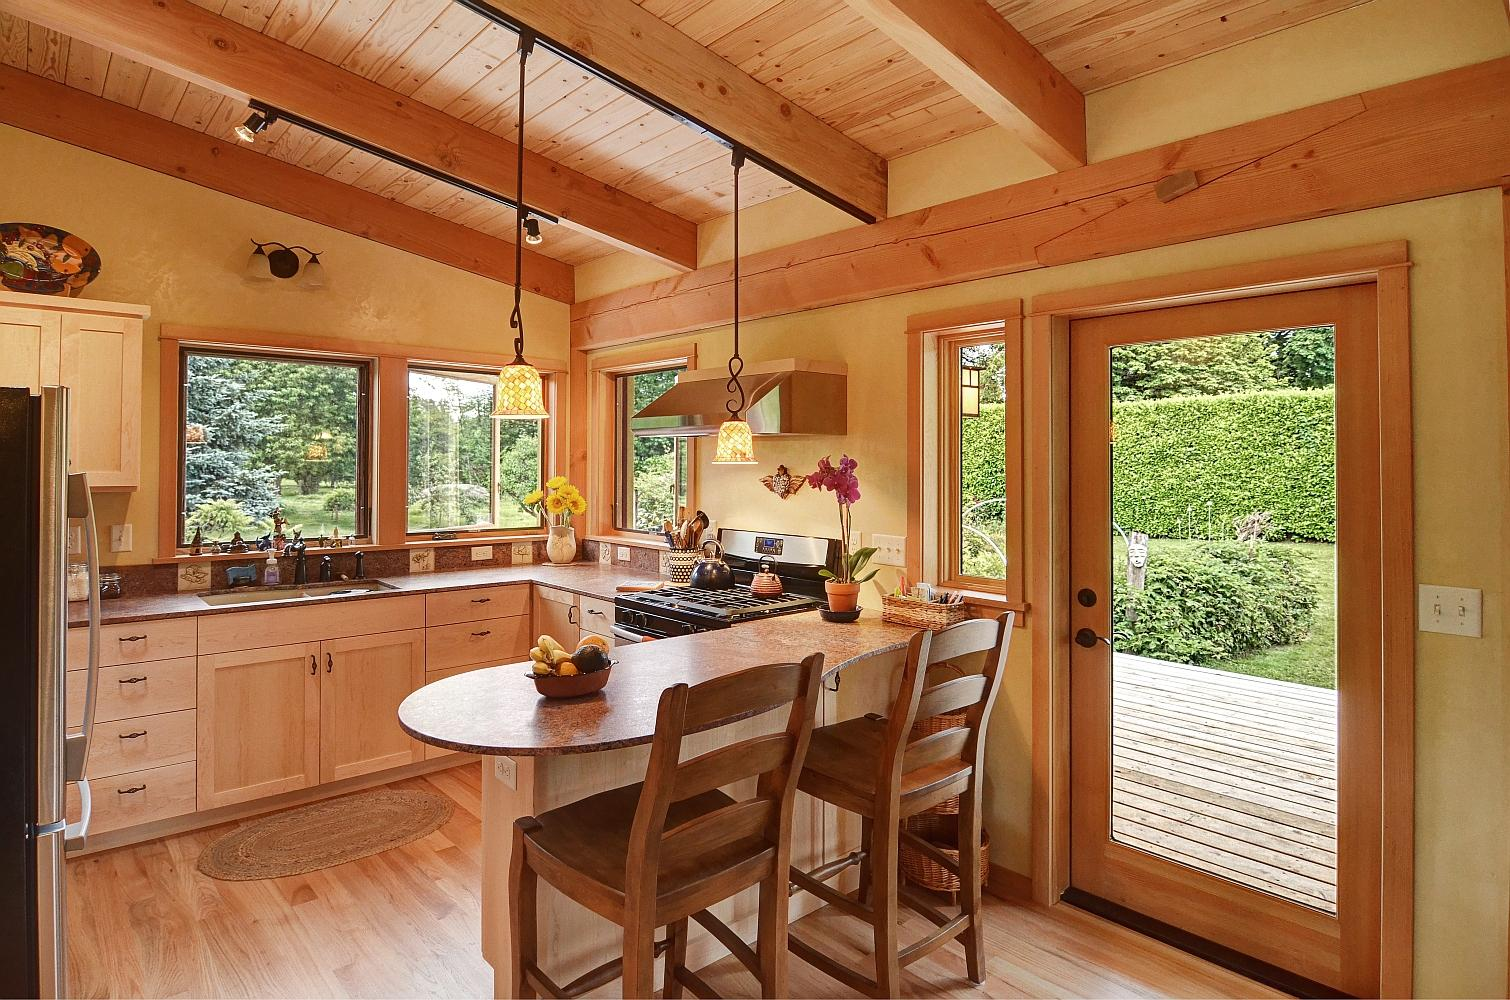 Gallery River Road House A Beautiful Timber Frame